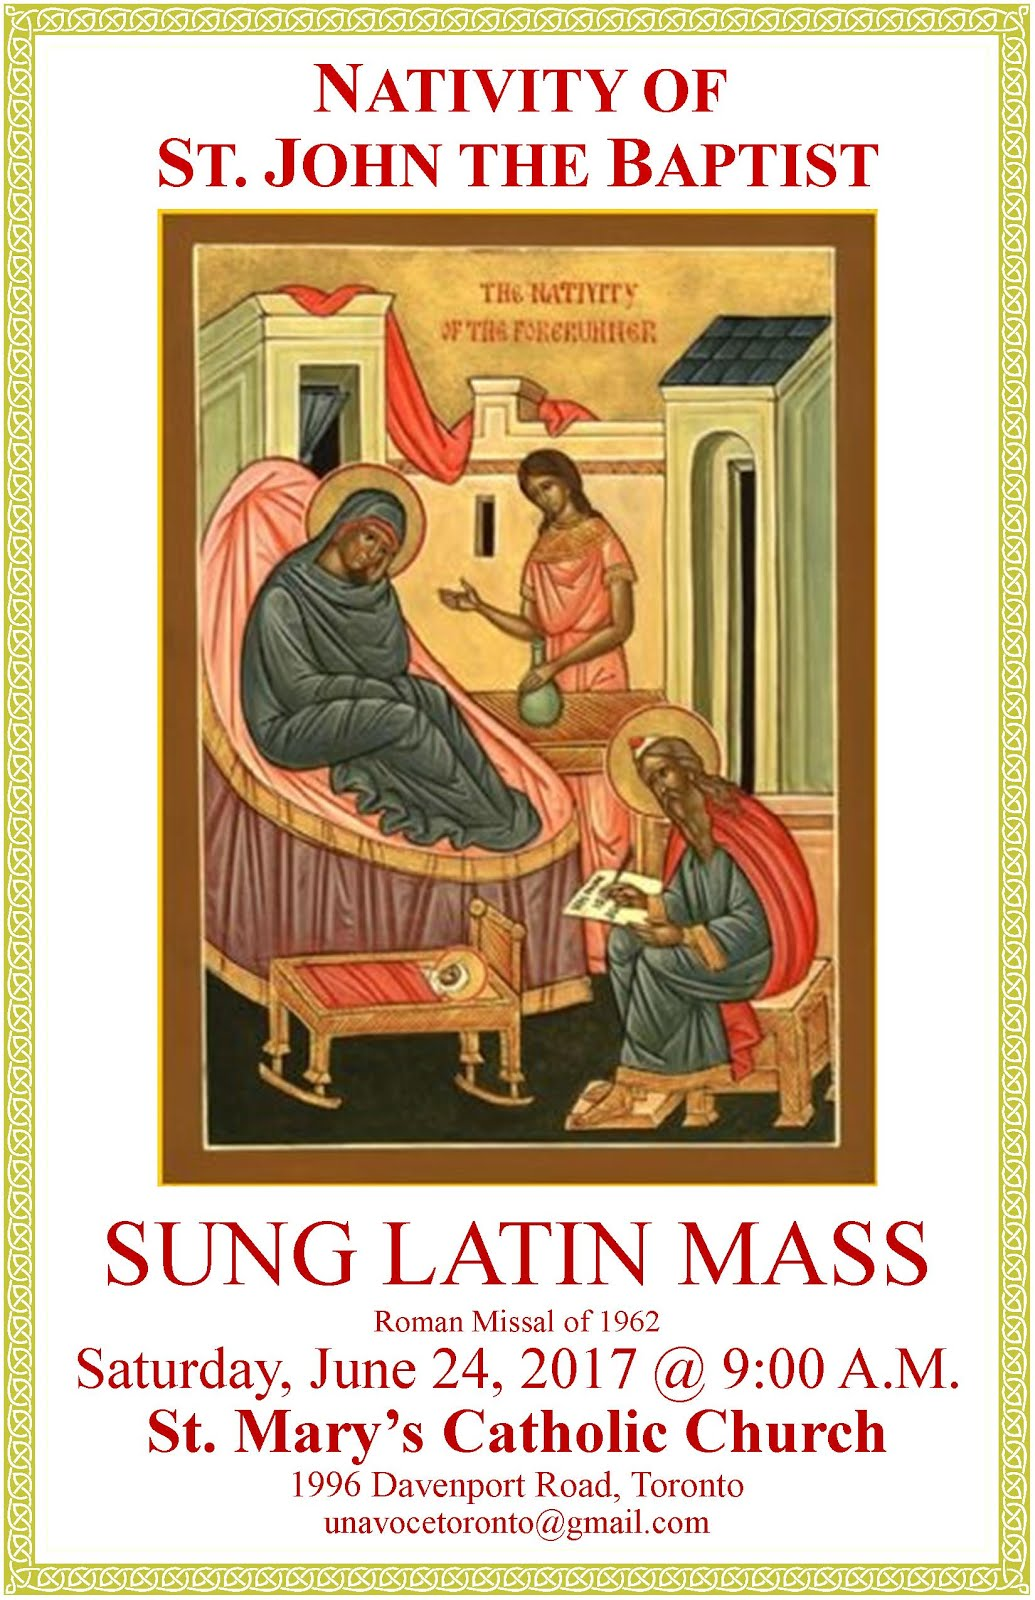 Latin Mass in Toronto for St. John the Baptist